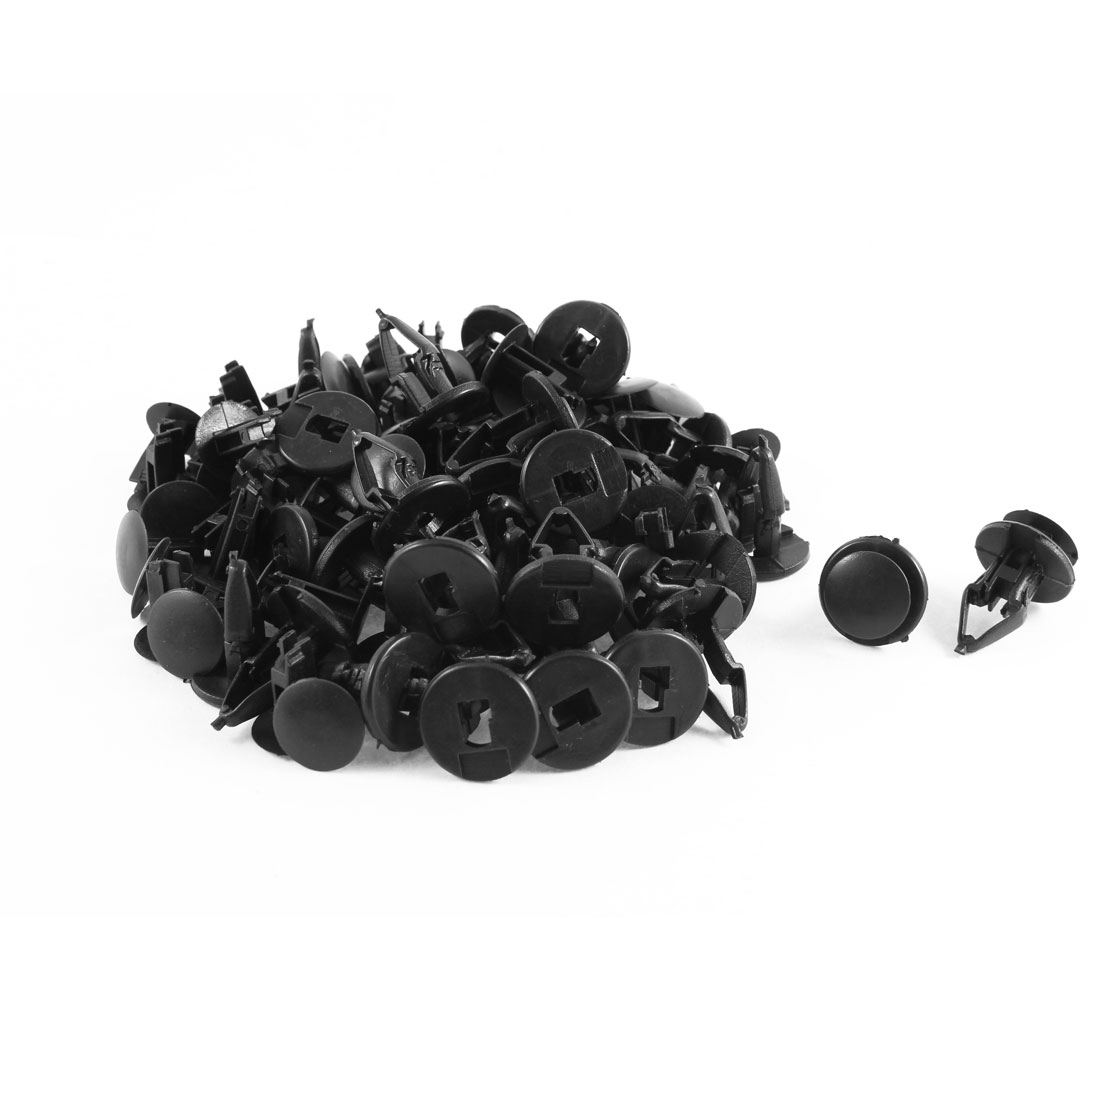 50 Pcs Black Plastic Splash Guard Moulding Bumper Clips 12mm x 19mm x 23mm